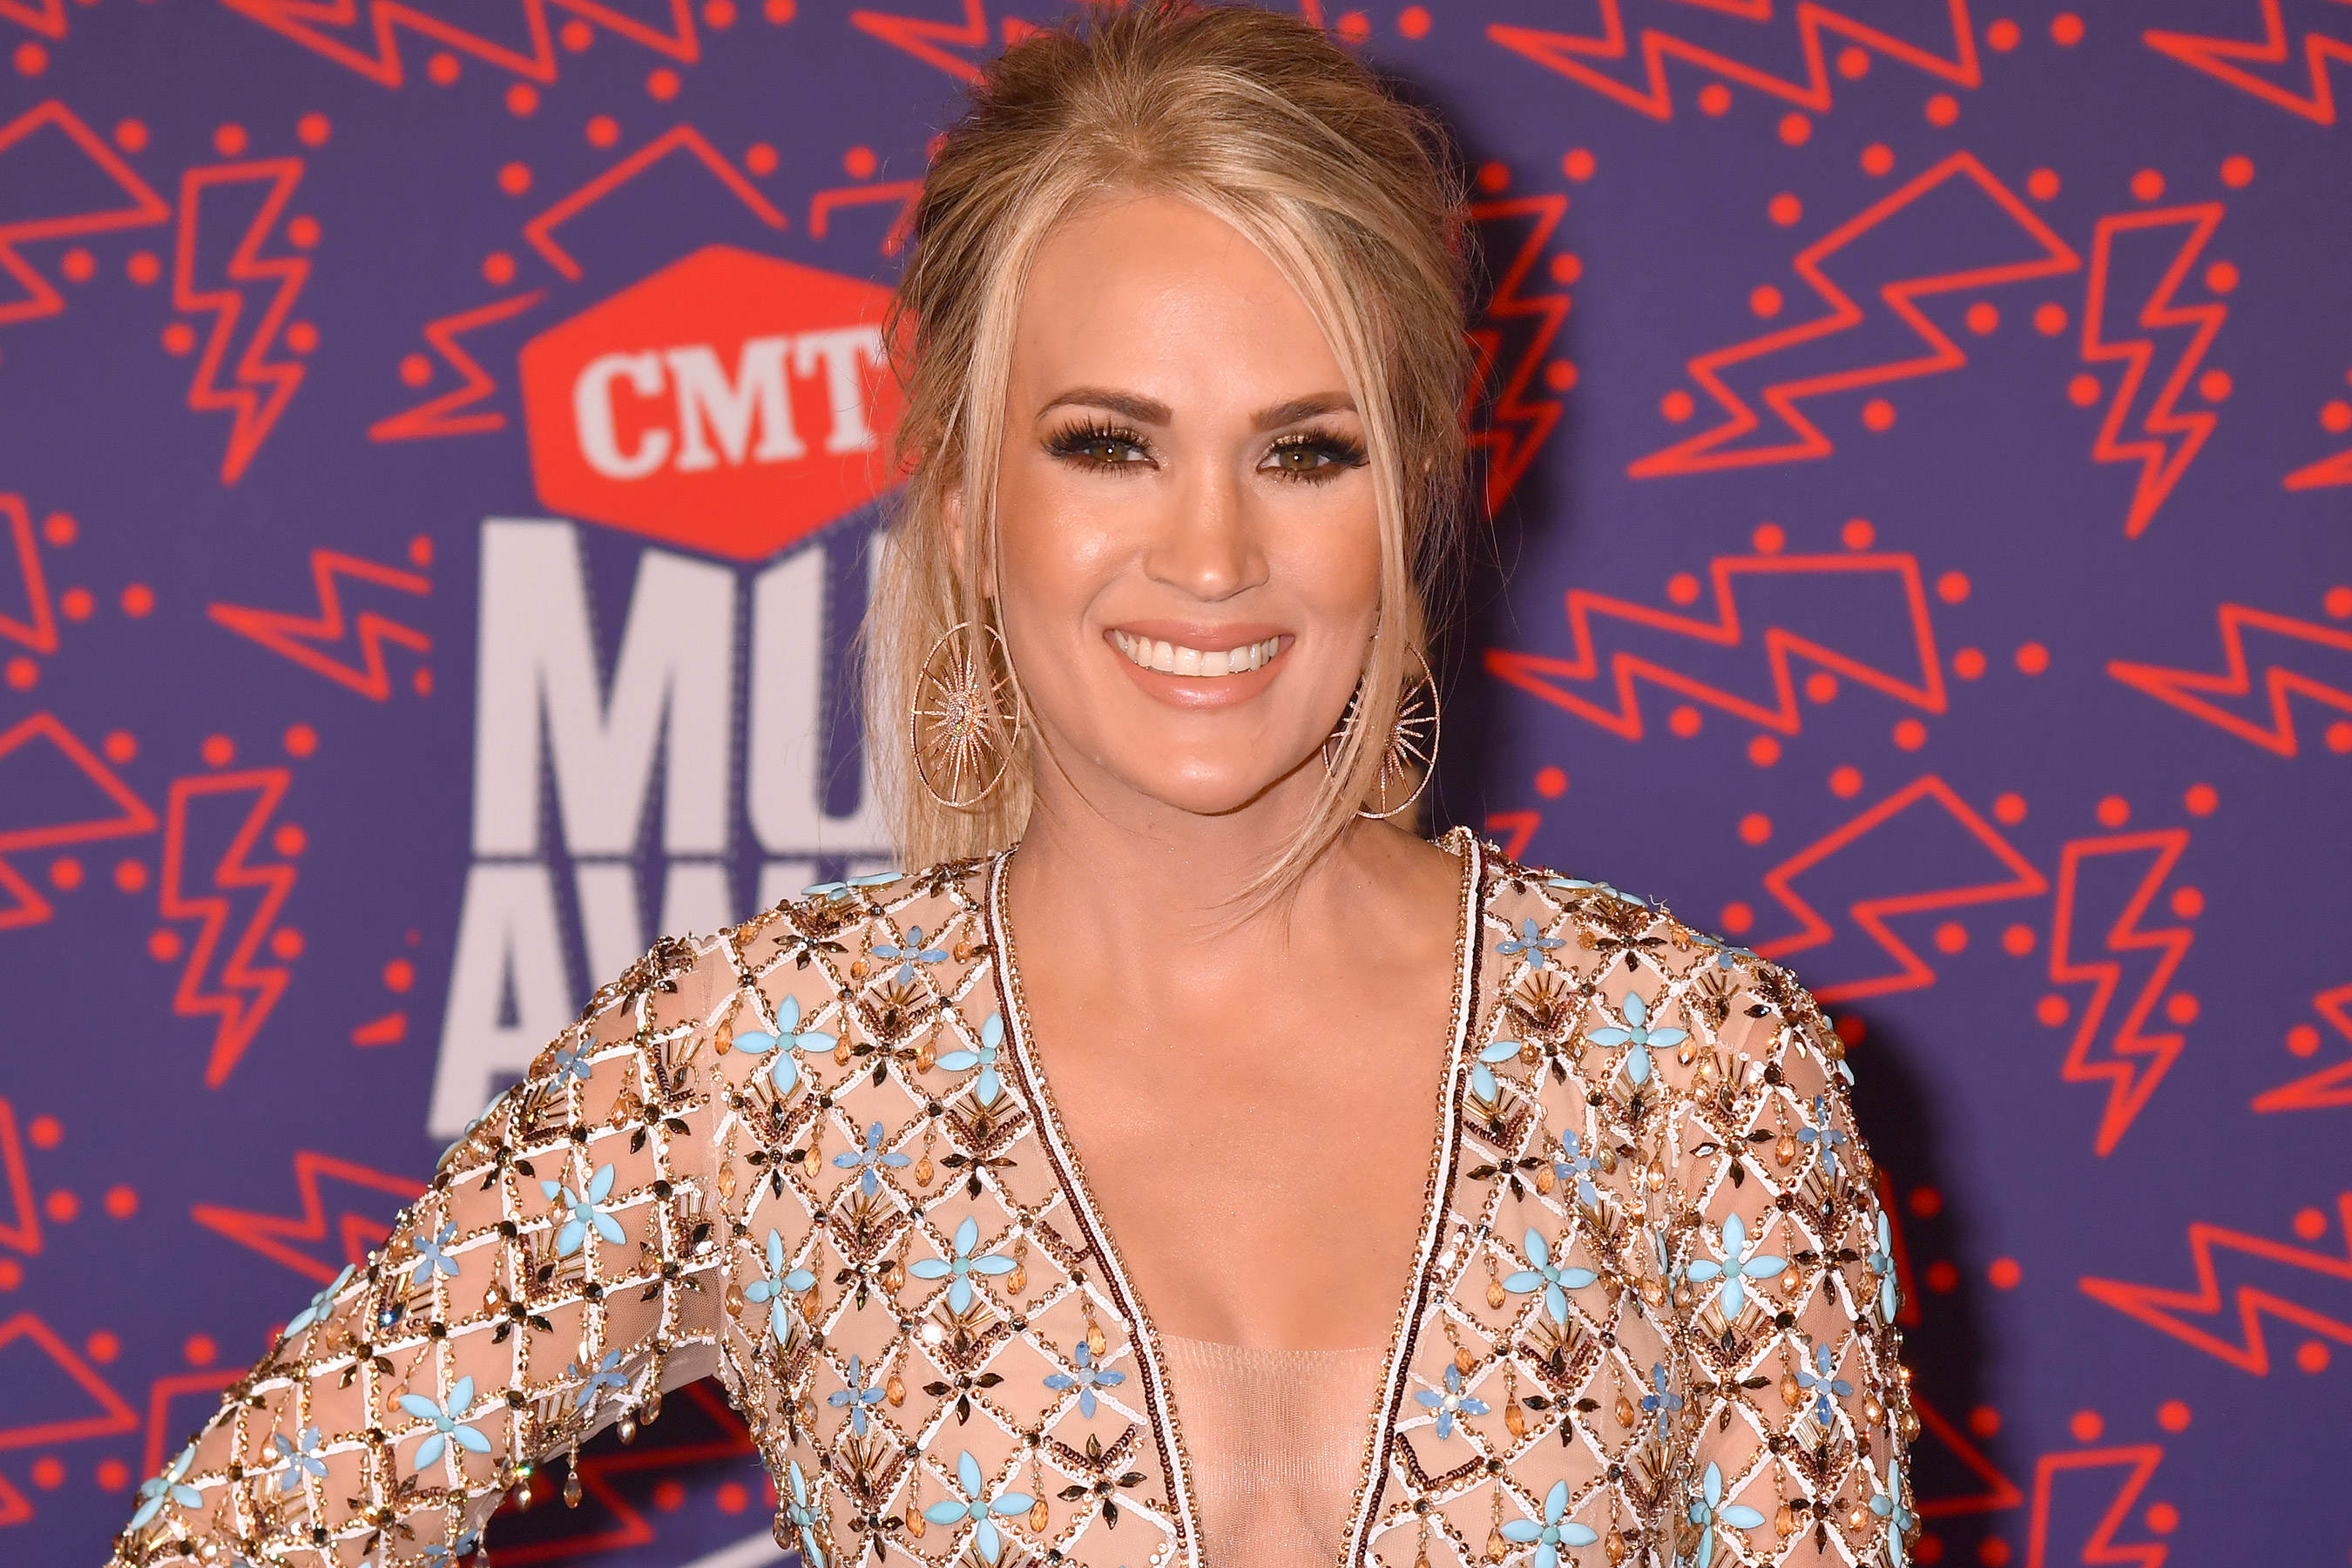 Carrie Underwood Shares Hilarious Video of 5-Month-Old Son Jacob Crying at His Dad's Singing